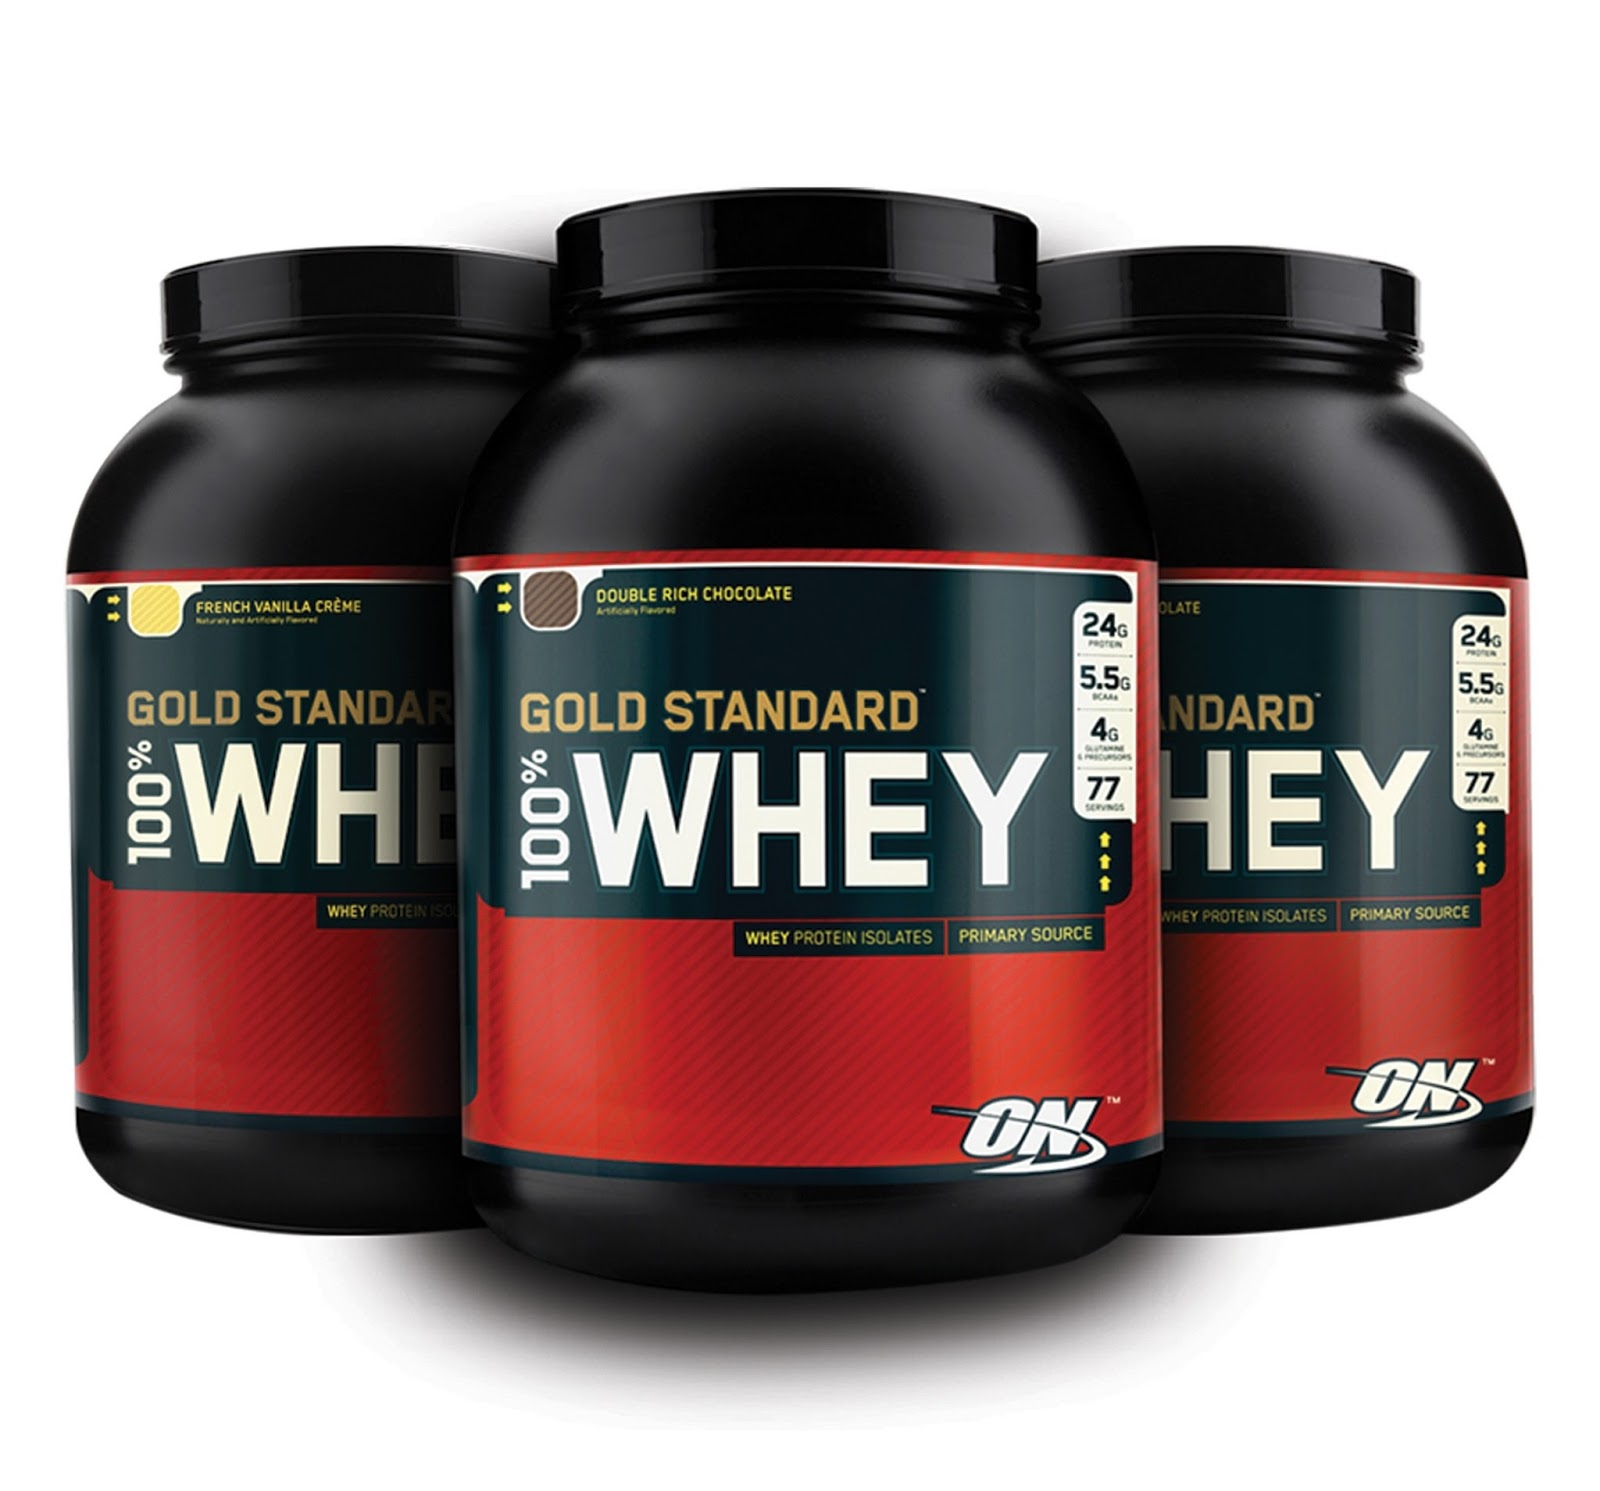 Whey Protein Supplement for sale